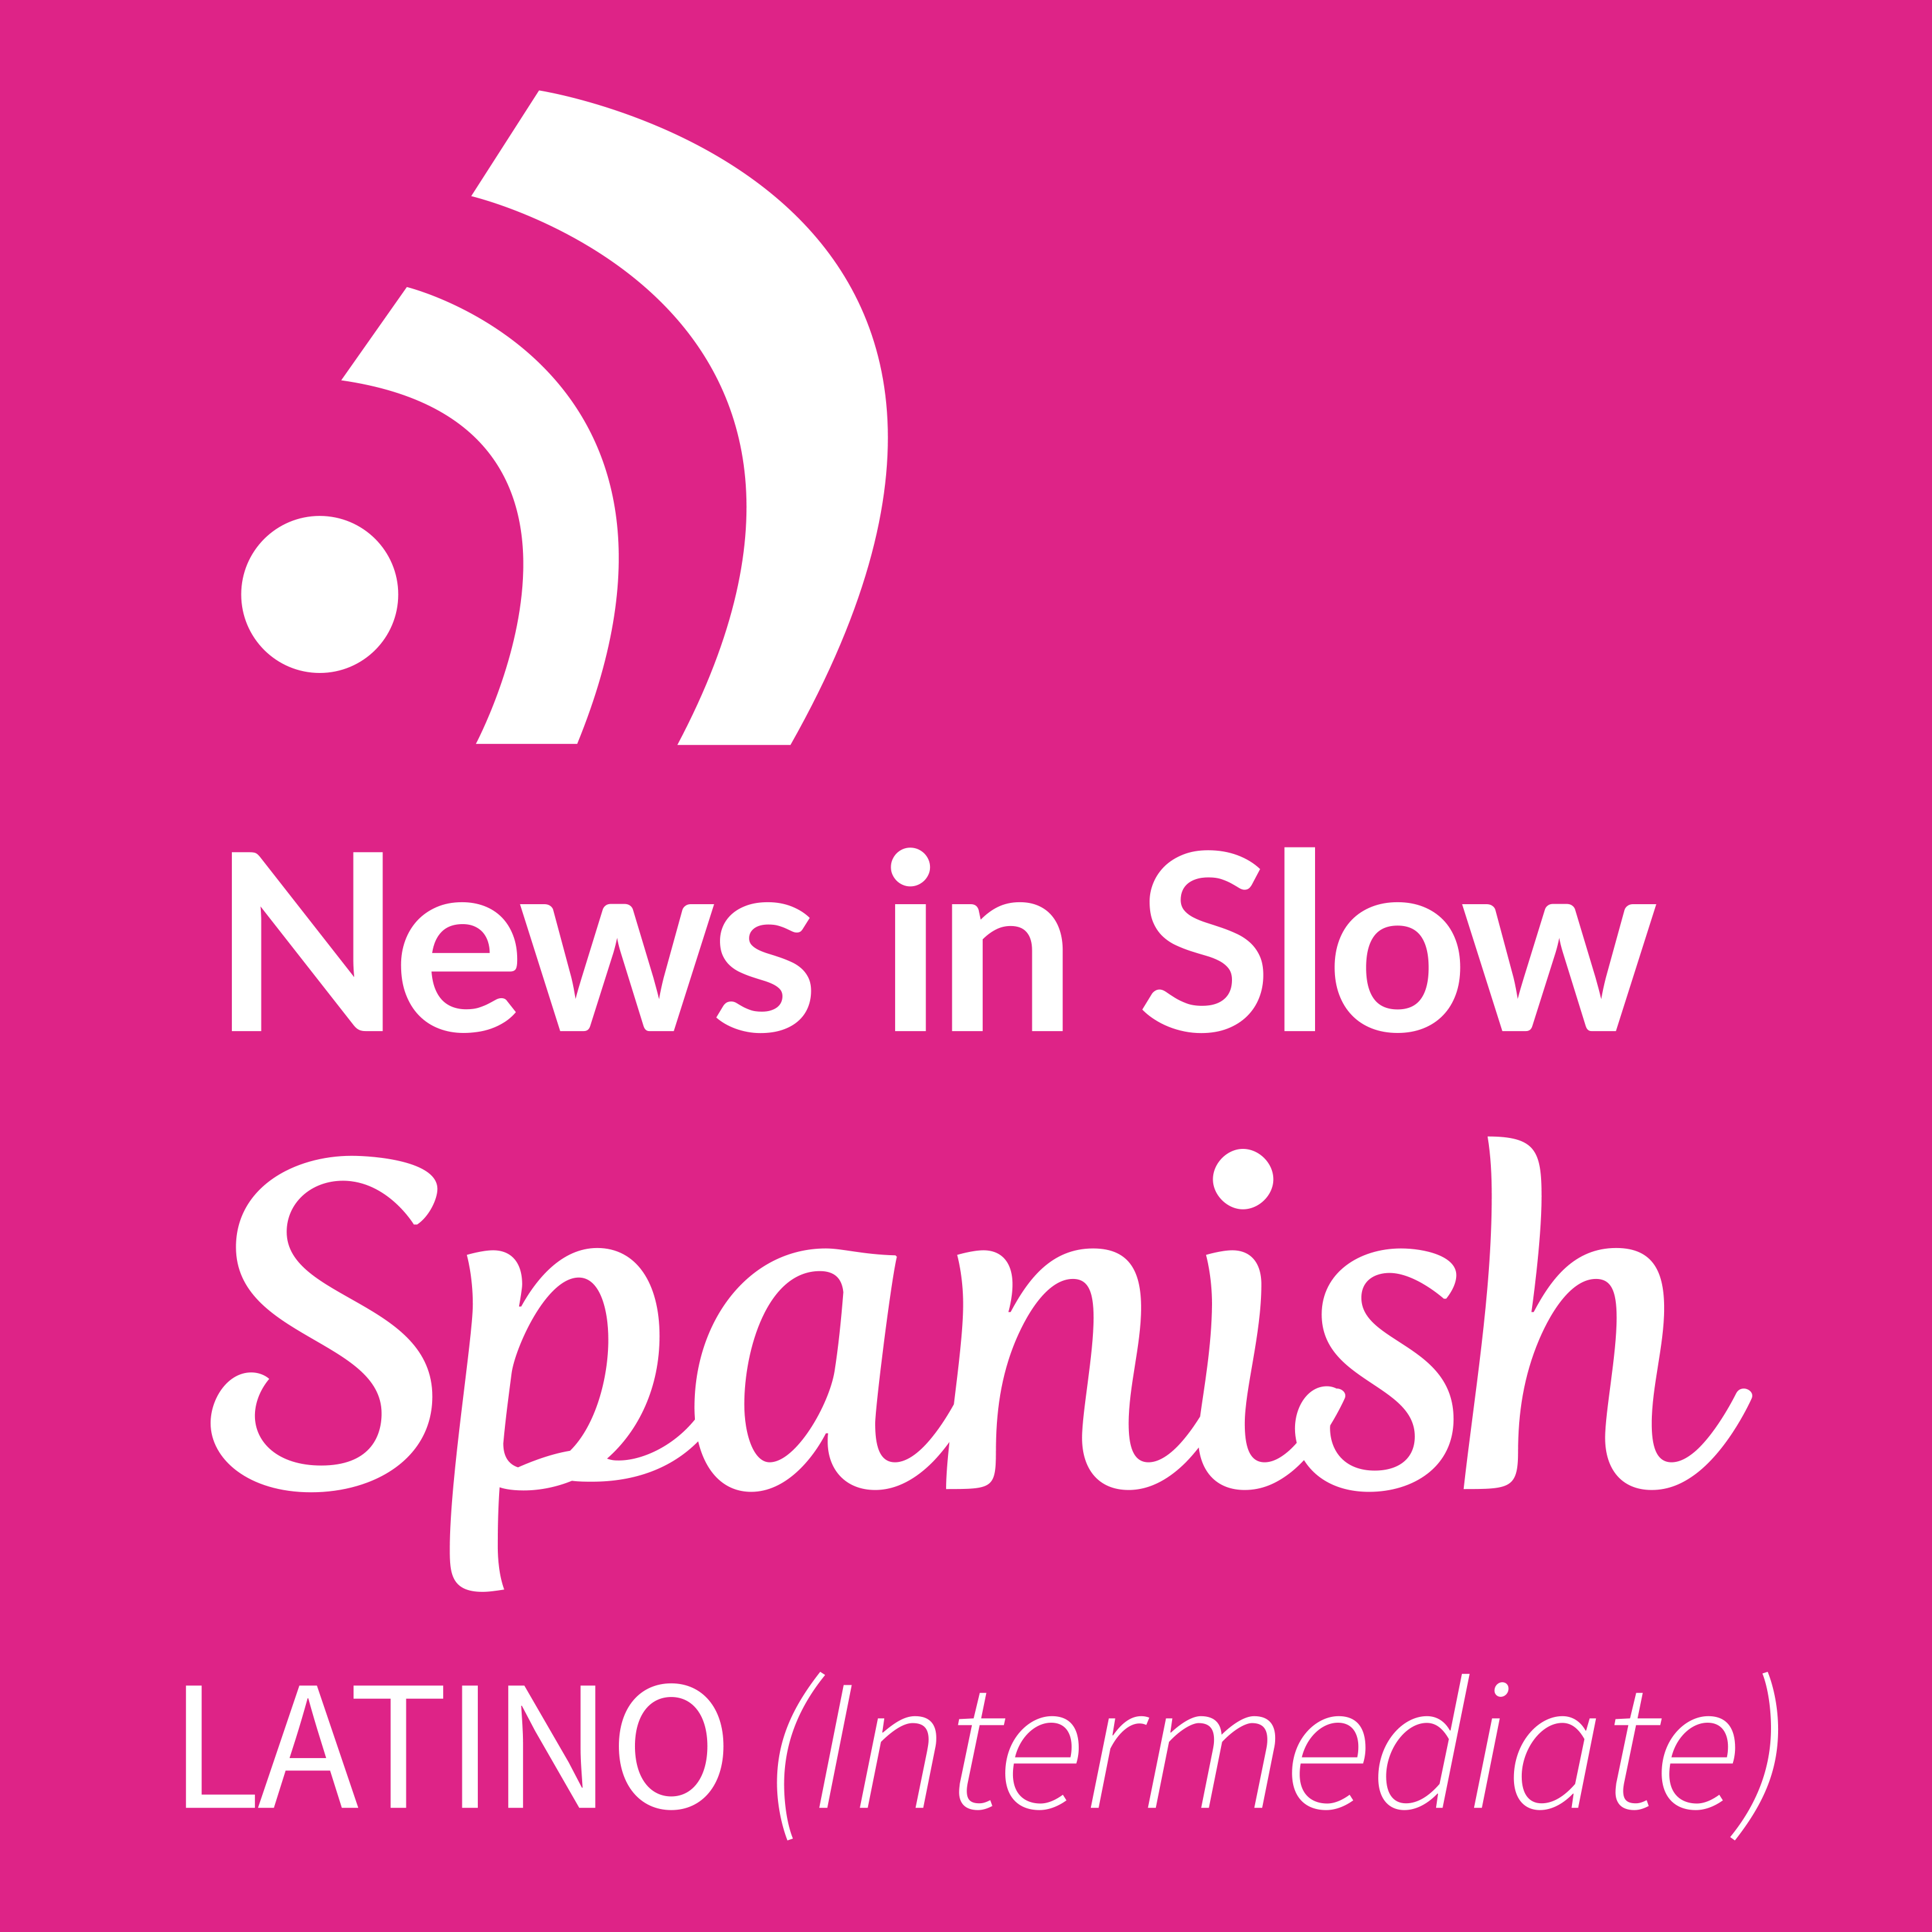 News in Slow Spanish Latino - # 184 - Learn Spanish through current events